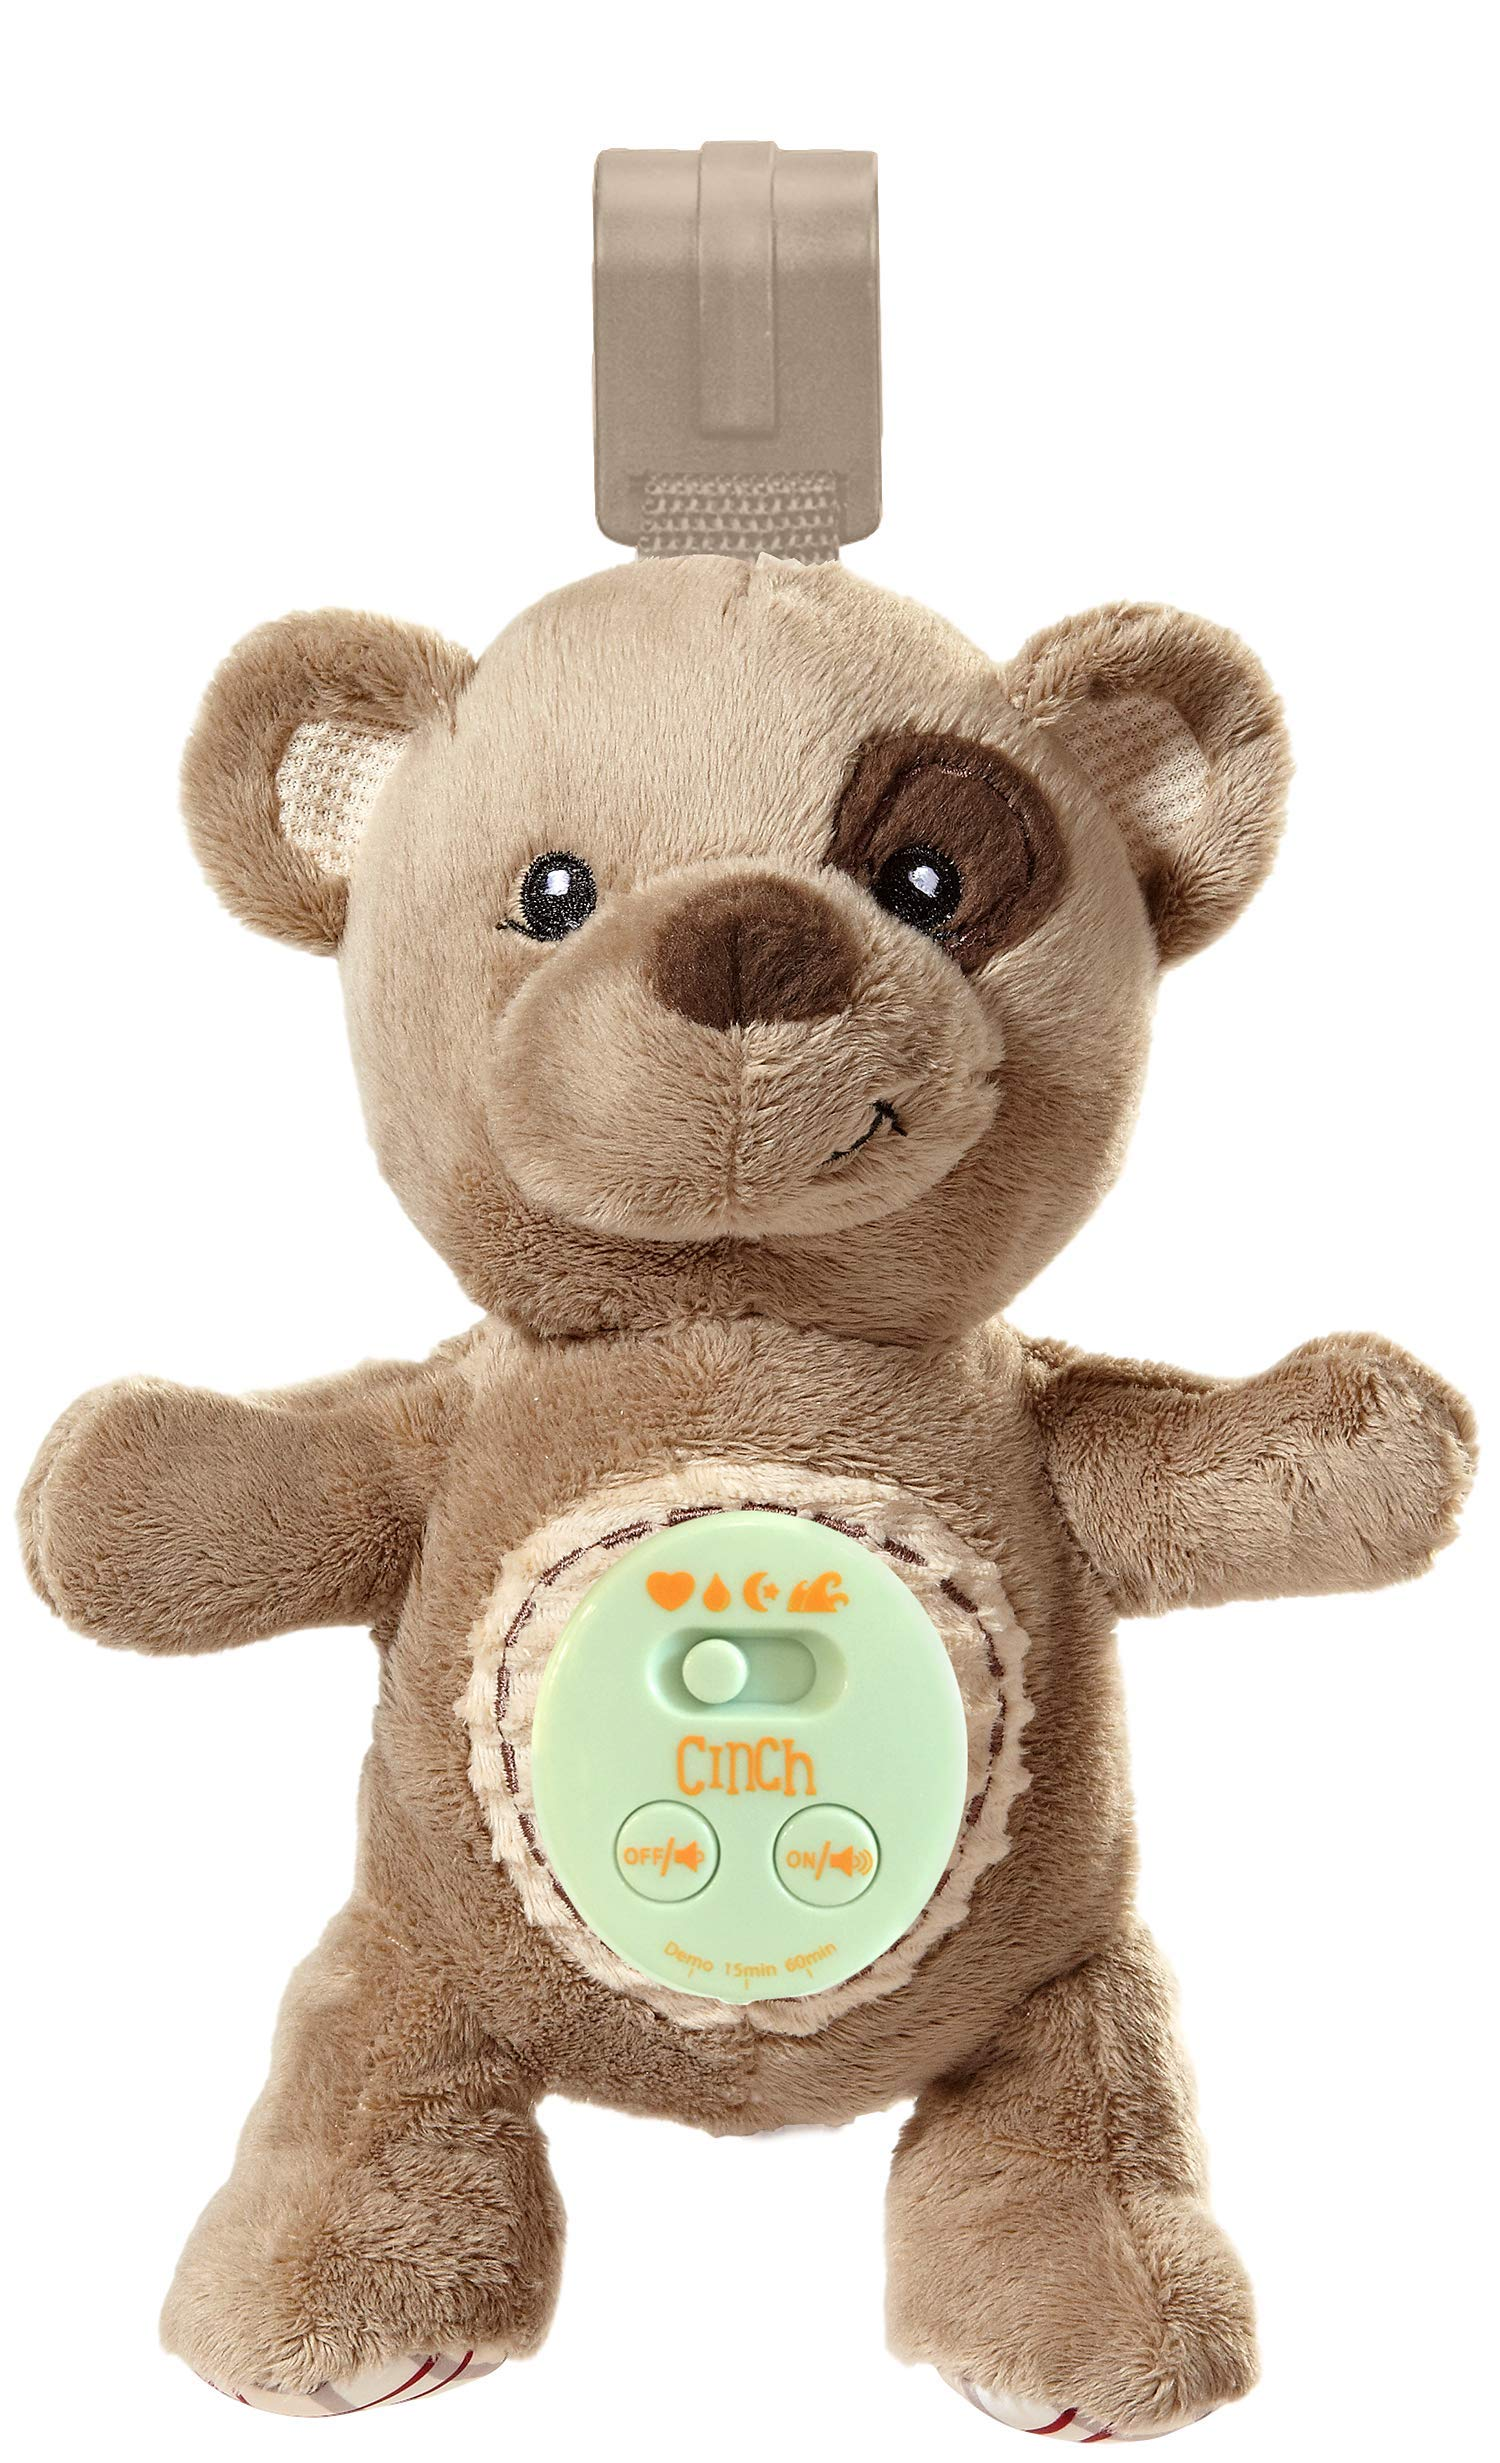 Cinch by dexbaby Plush Mini Bear - Sleep Aid Womb Sound Soother w/Playard and Crib Attachment